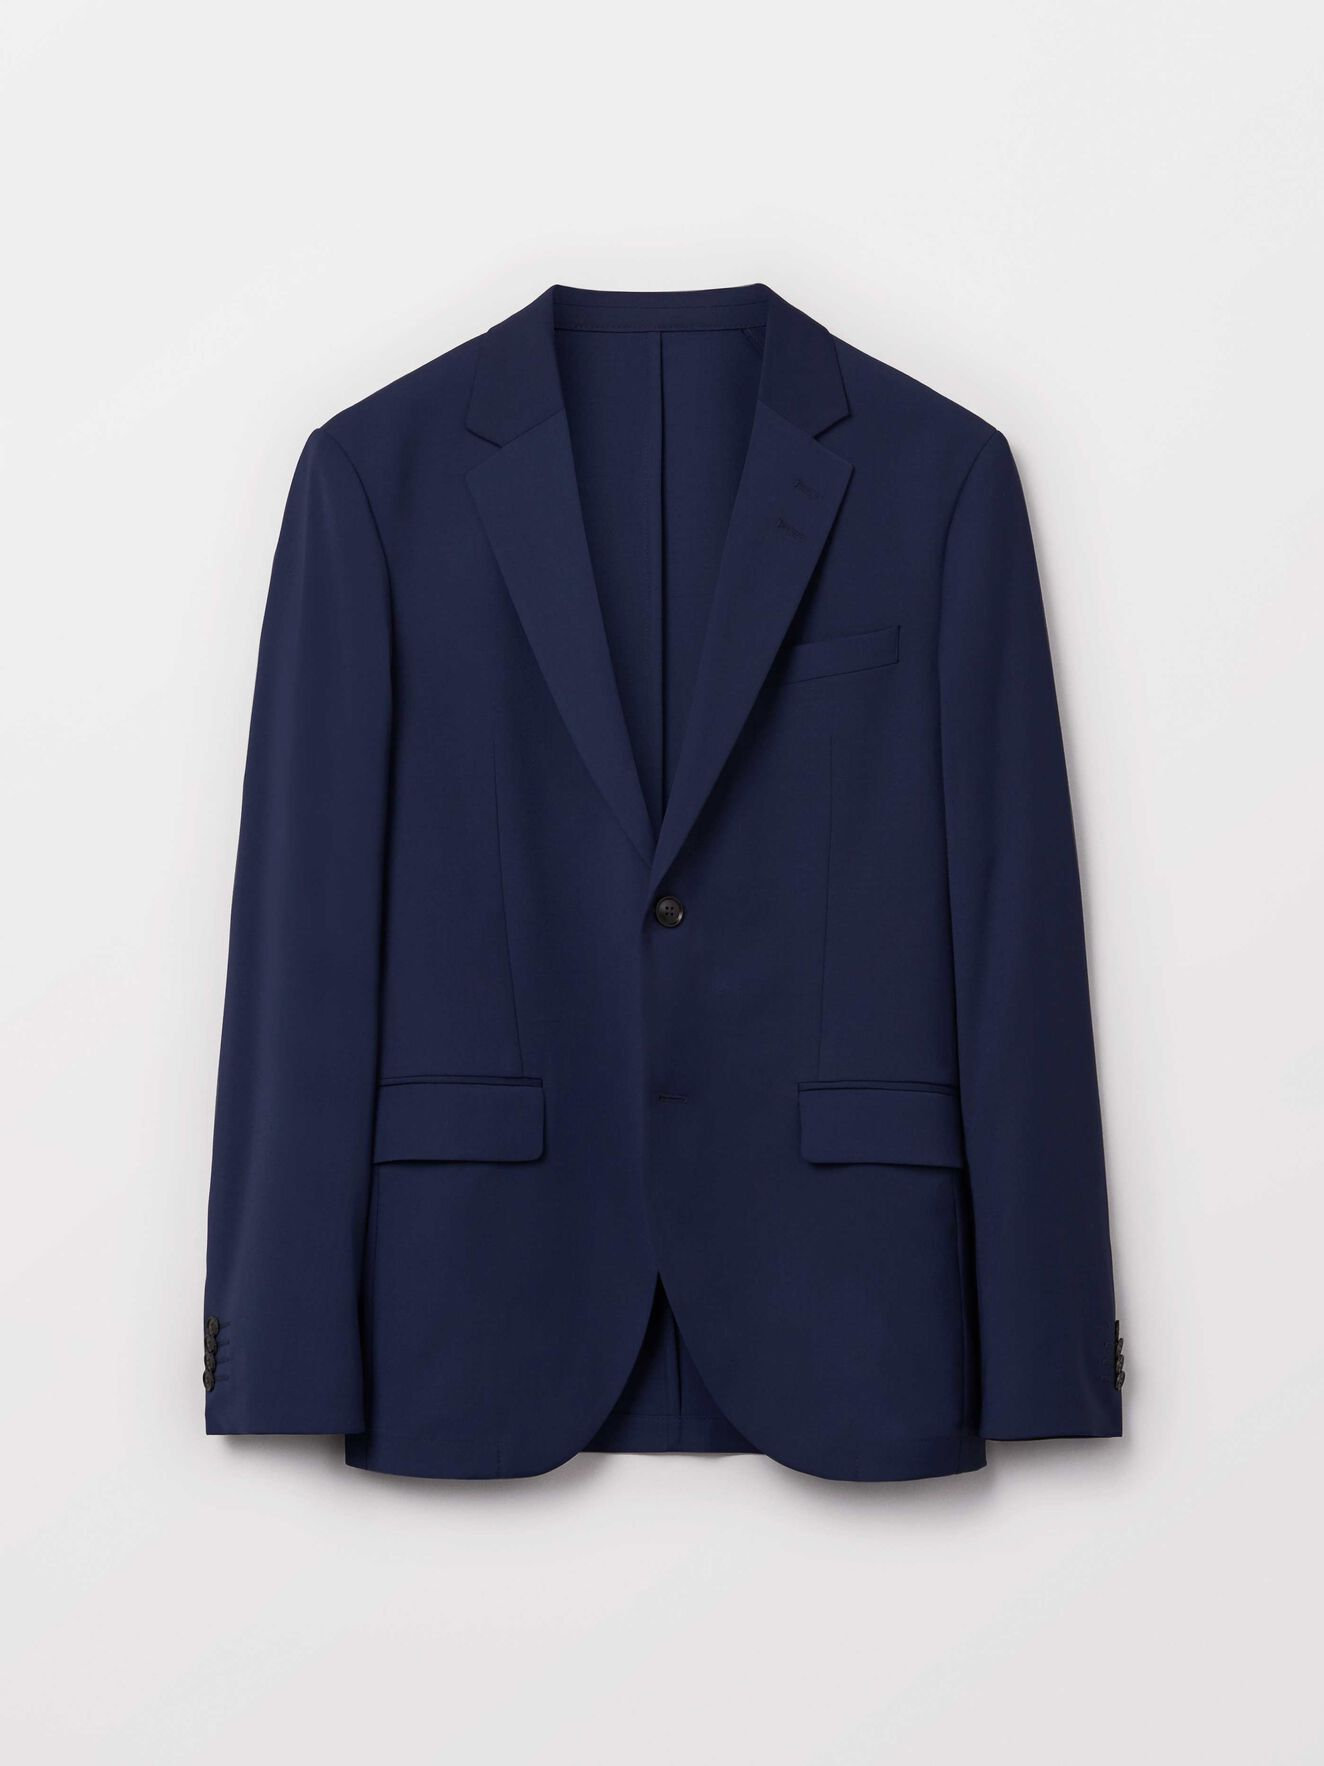 Jamonte Ul Blazer in Blue from Tiger of Sweden